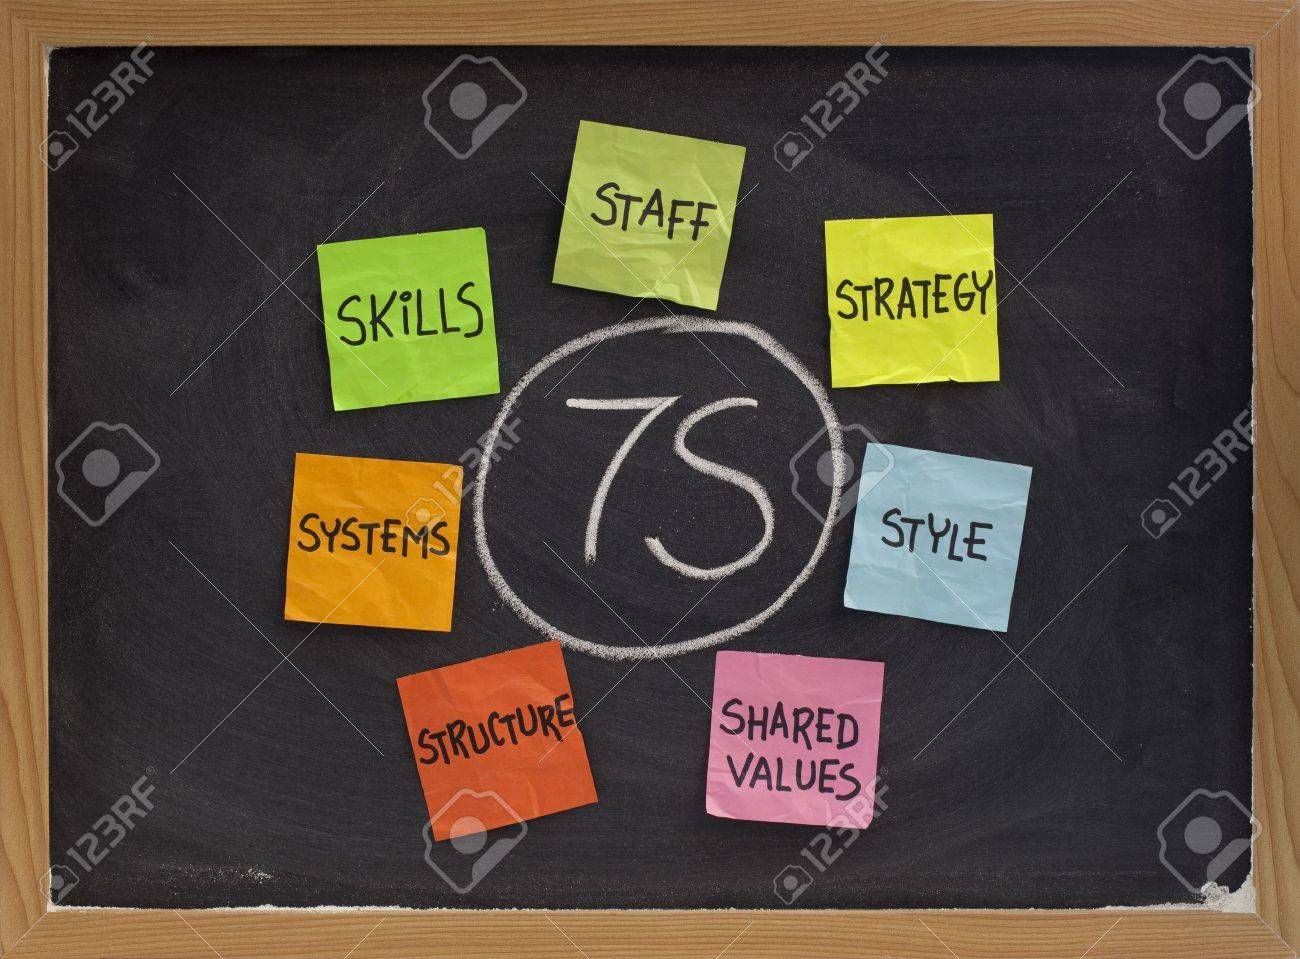 7S model for organizational culture, analysis and development (skills, staff, strategy, systems, structure, style, shared values) - colorful reminder notes, white chalk drawing on blackboard Stock Photo - 6161097